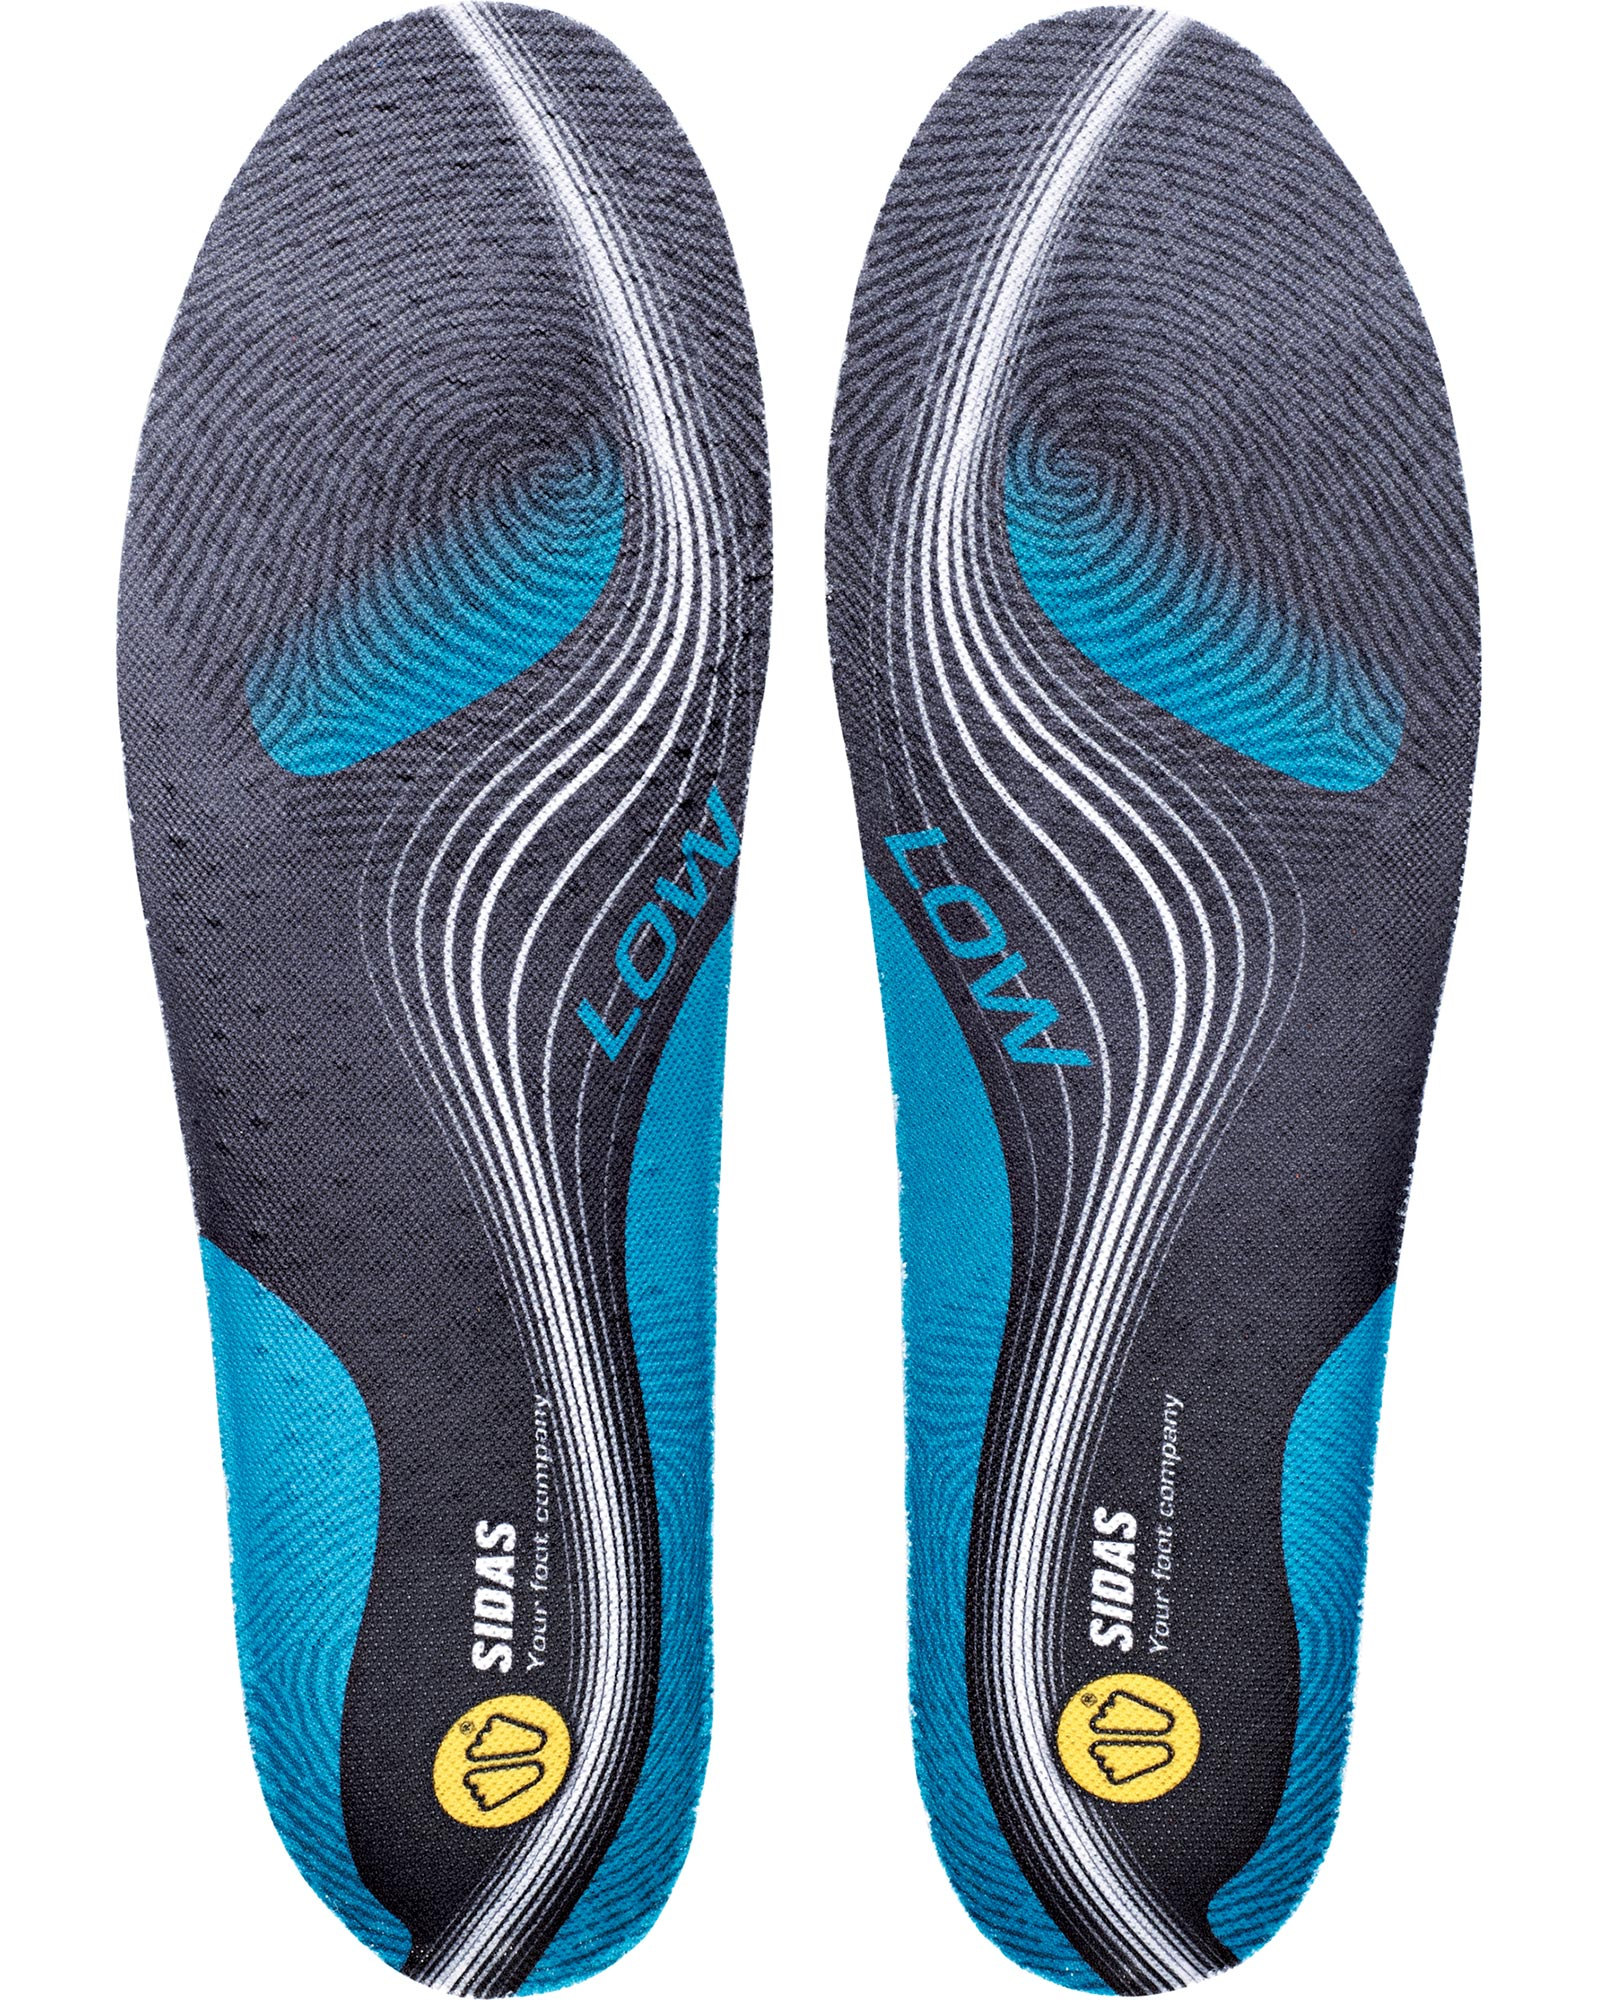 Sidas 3Feet Activ' Low Insoles 0